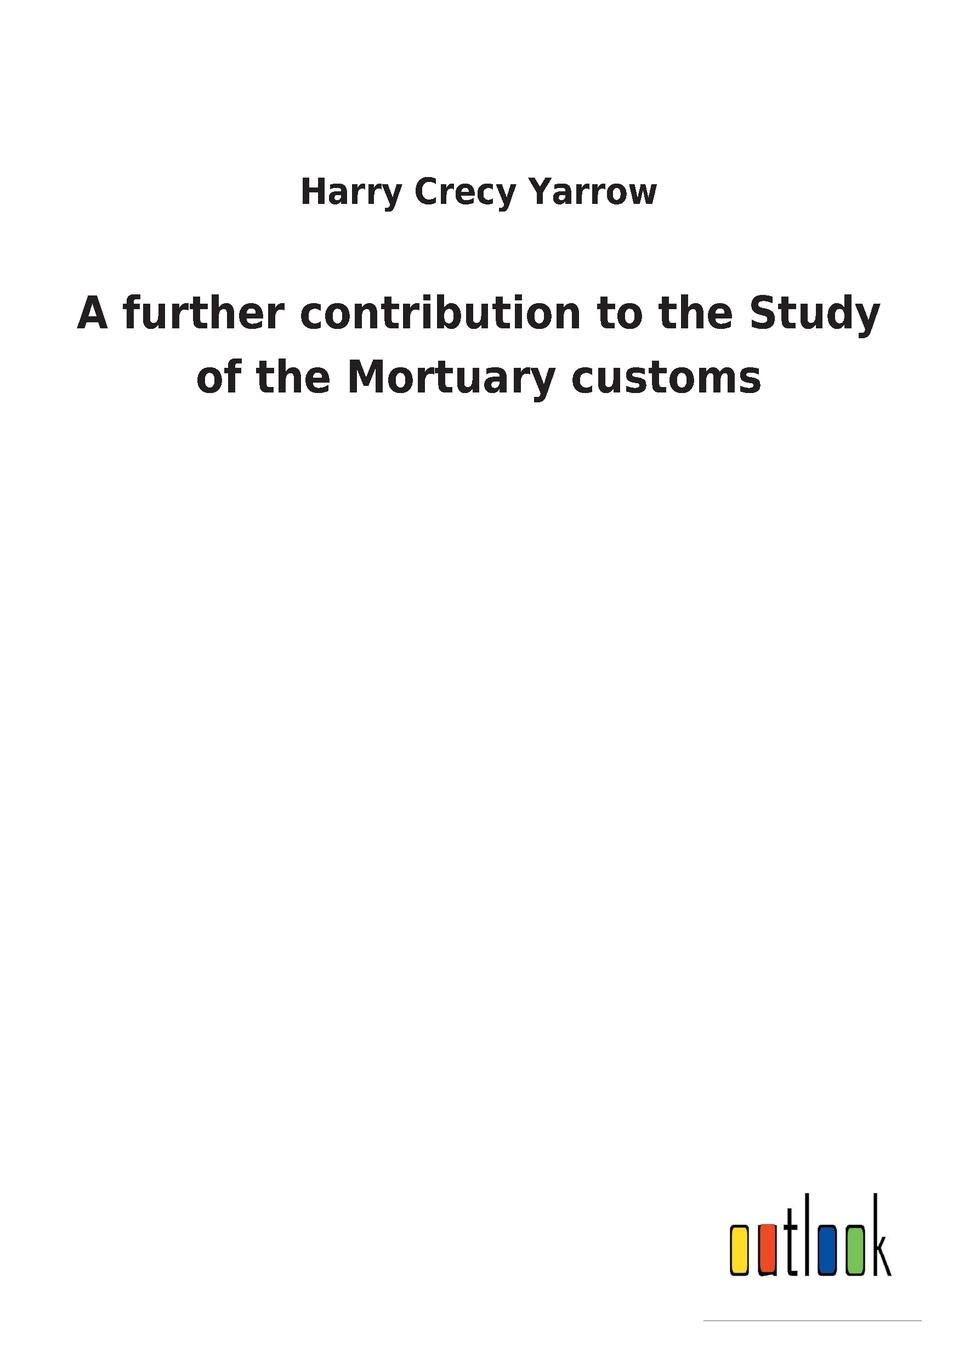 Harry Crecy Yarrow A further contribution to the Study of the Mortuary customs yarrow model r